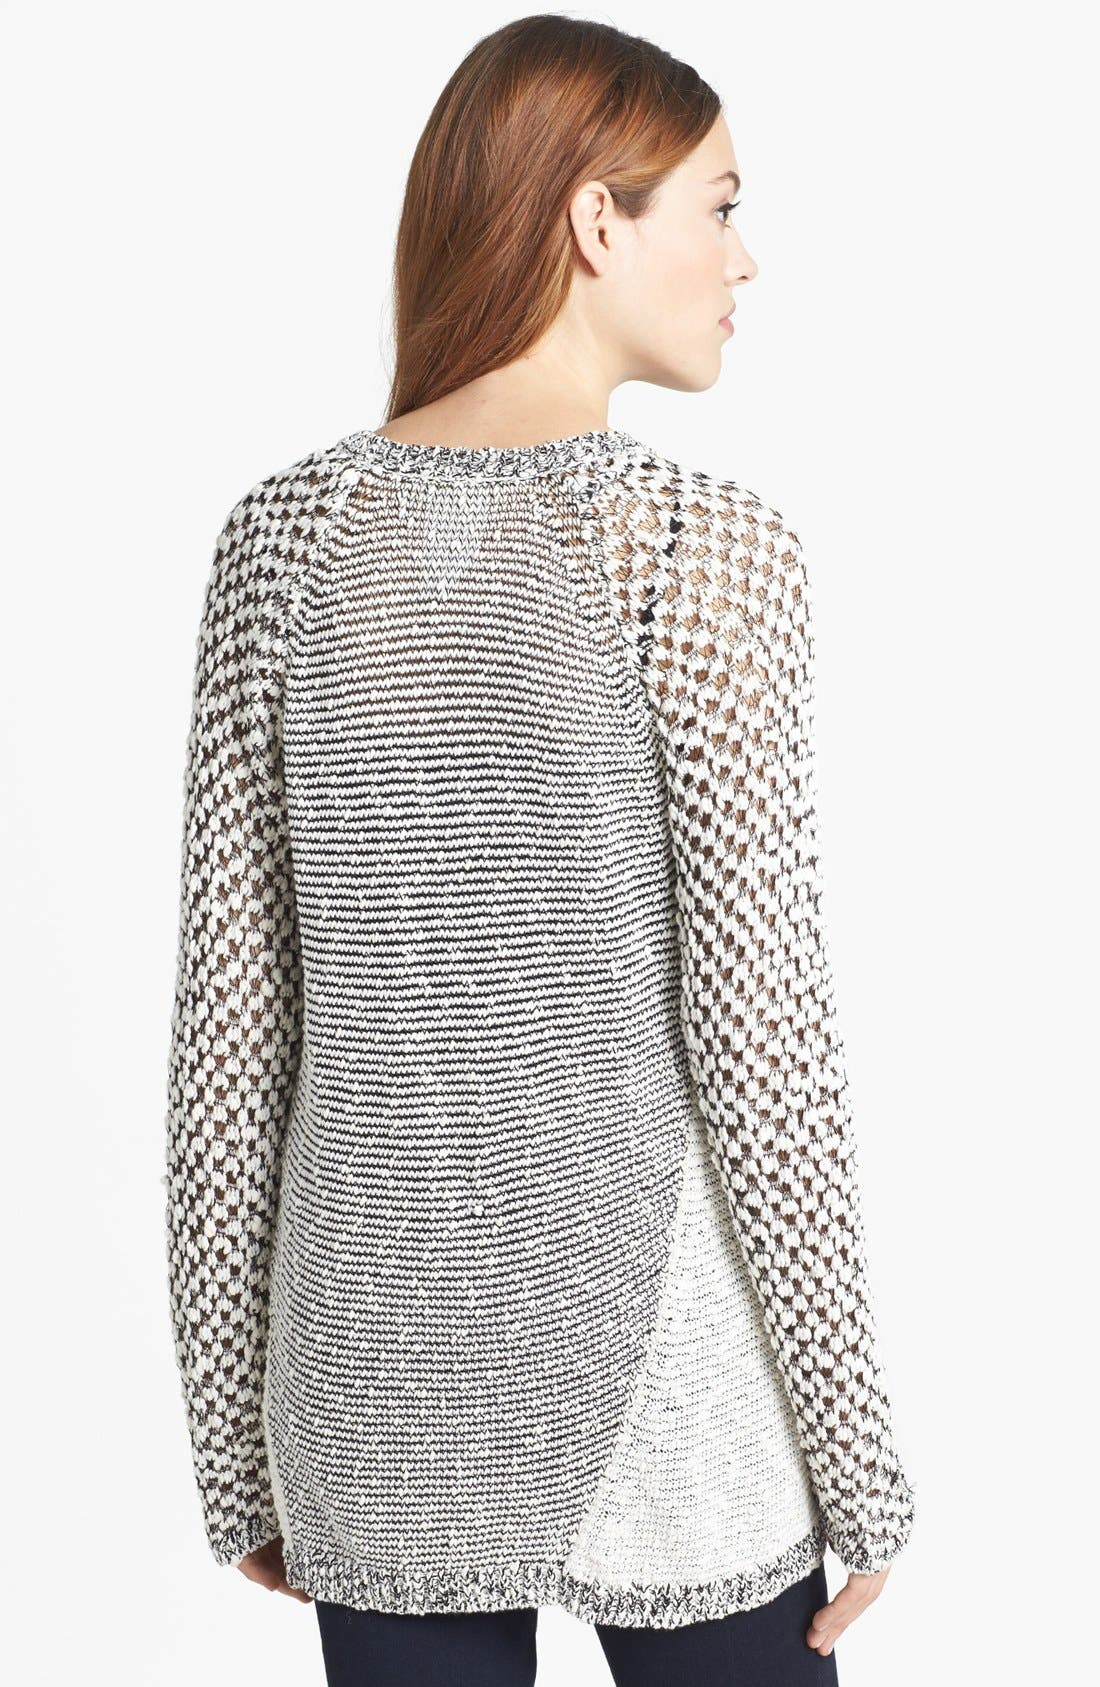 Alternate Image 2  - Two by Vince Camuto Mixed Stitch Crewneck Sweater (Petite)